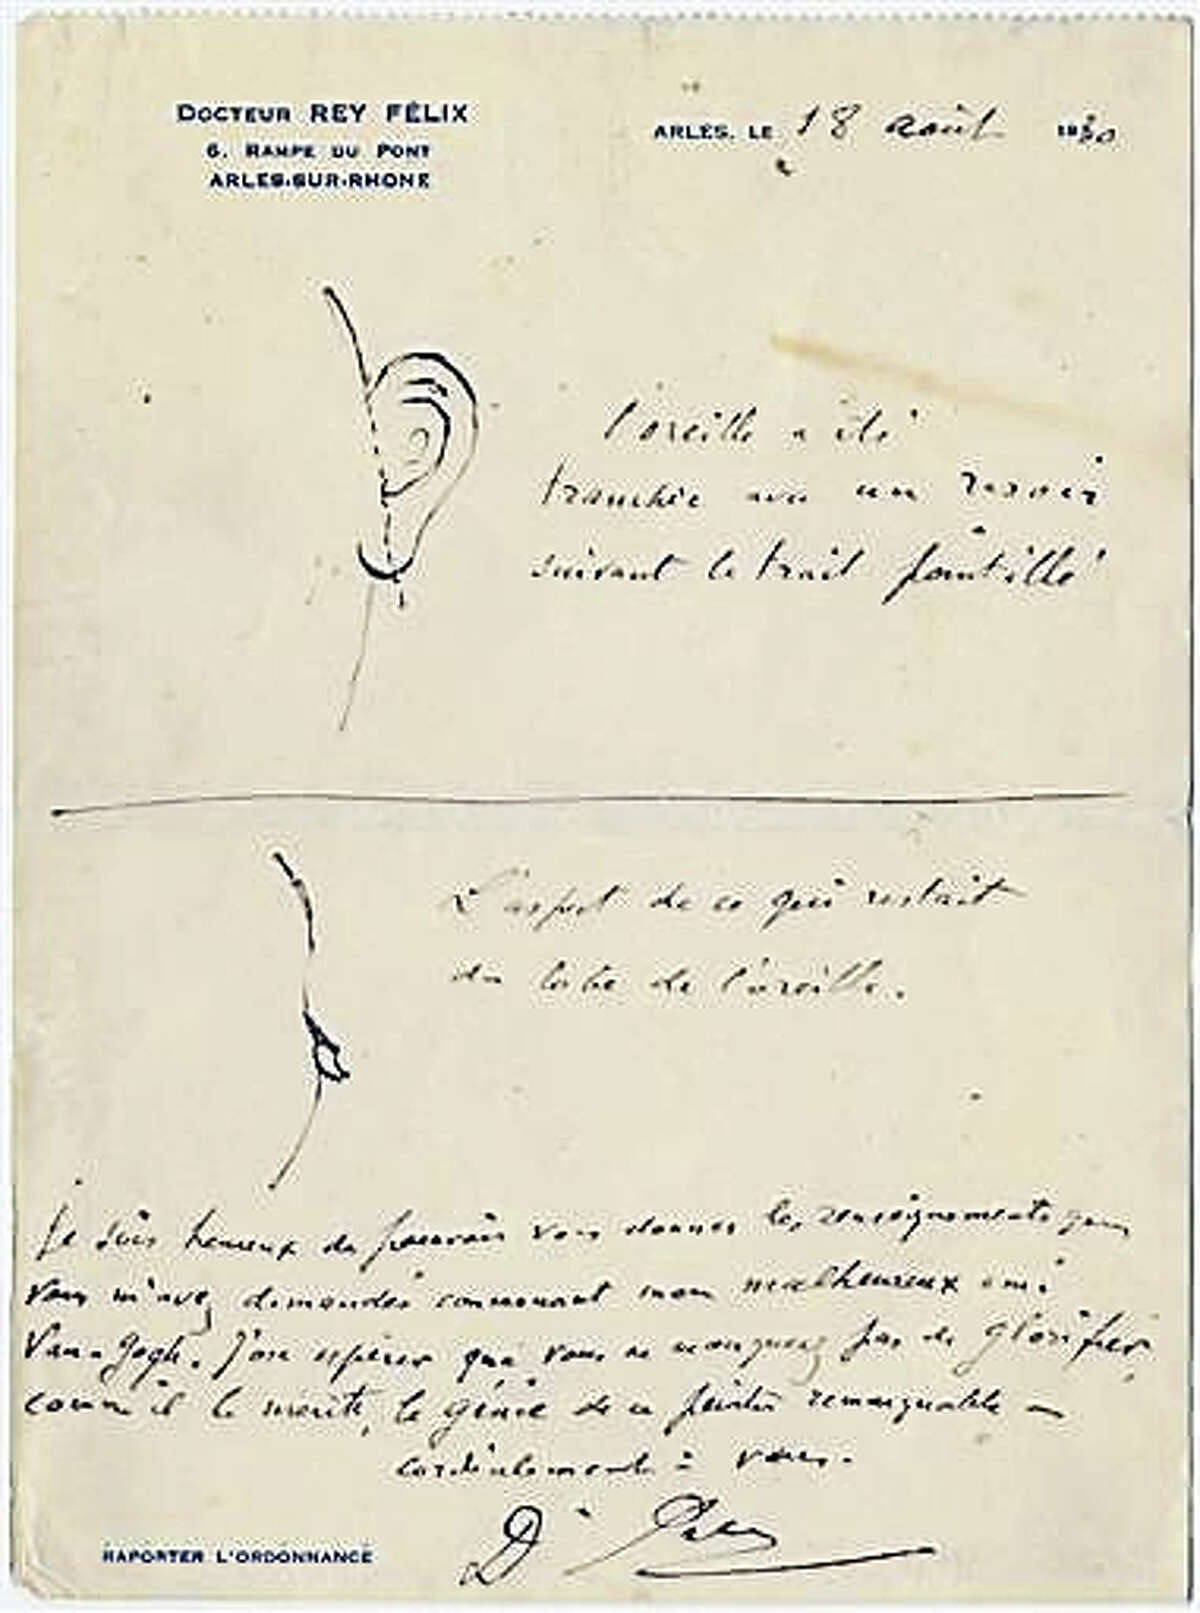 This image made available by the Van Gogh Museum on Wednesday July 13, 2016, shows a sketch and notes made by junior French provincial doctor Dr. Felix Rey. The sketch made by Dr Felix Rey who treated Van Gogh, was recently rediscovered in an American library and shows just how much off his left ear Van Gogh sliced off in December 1888 in the southern French town of Arles.